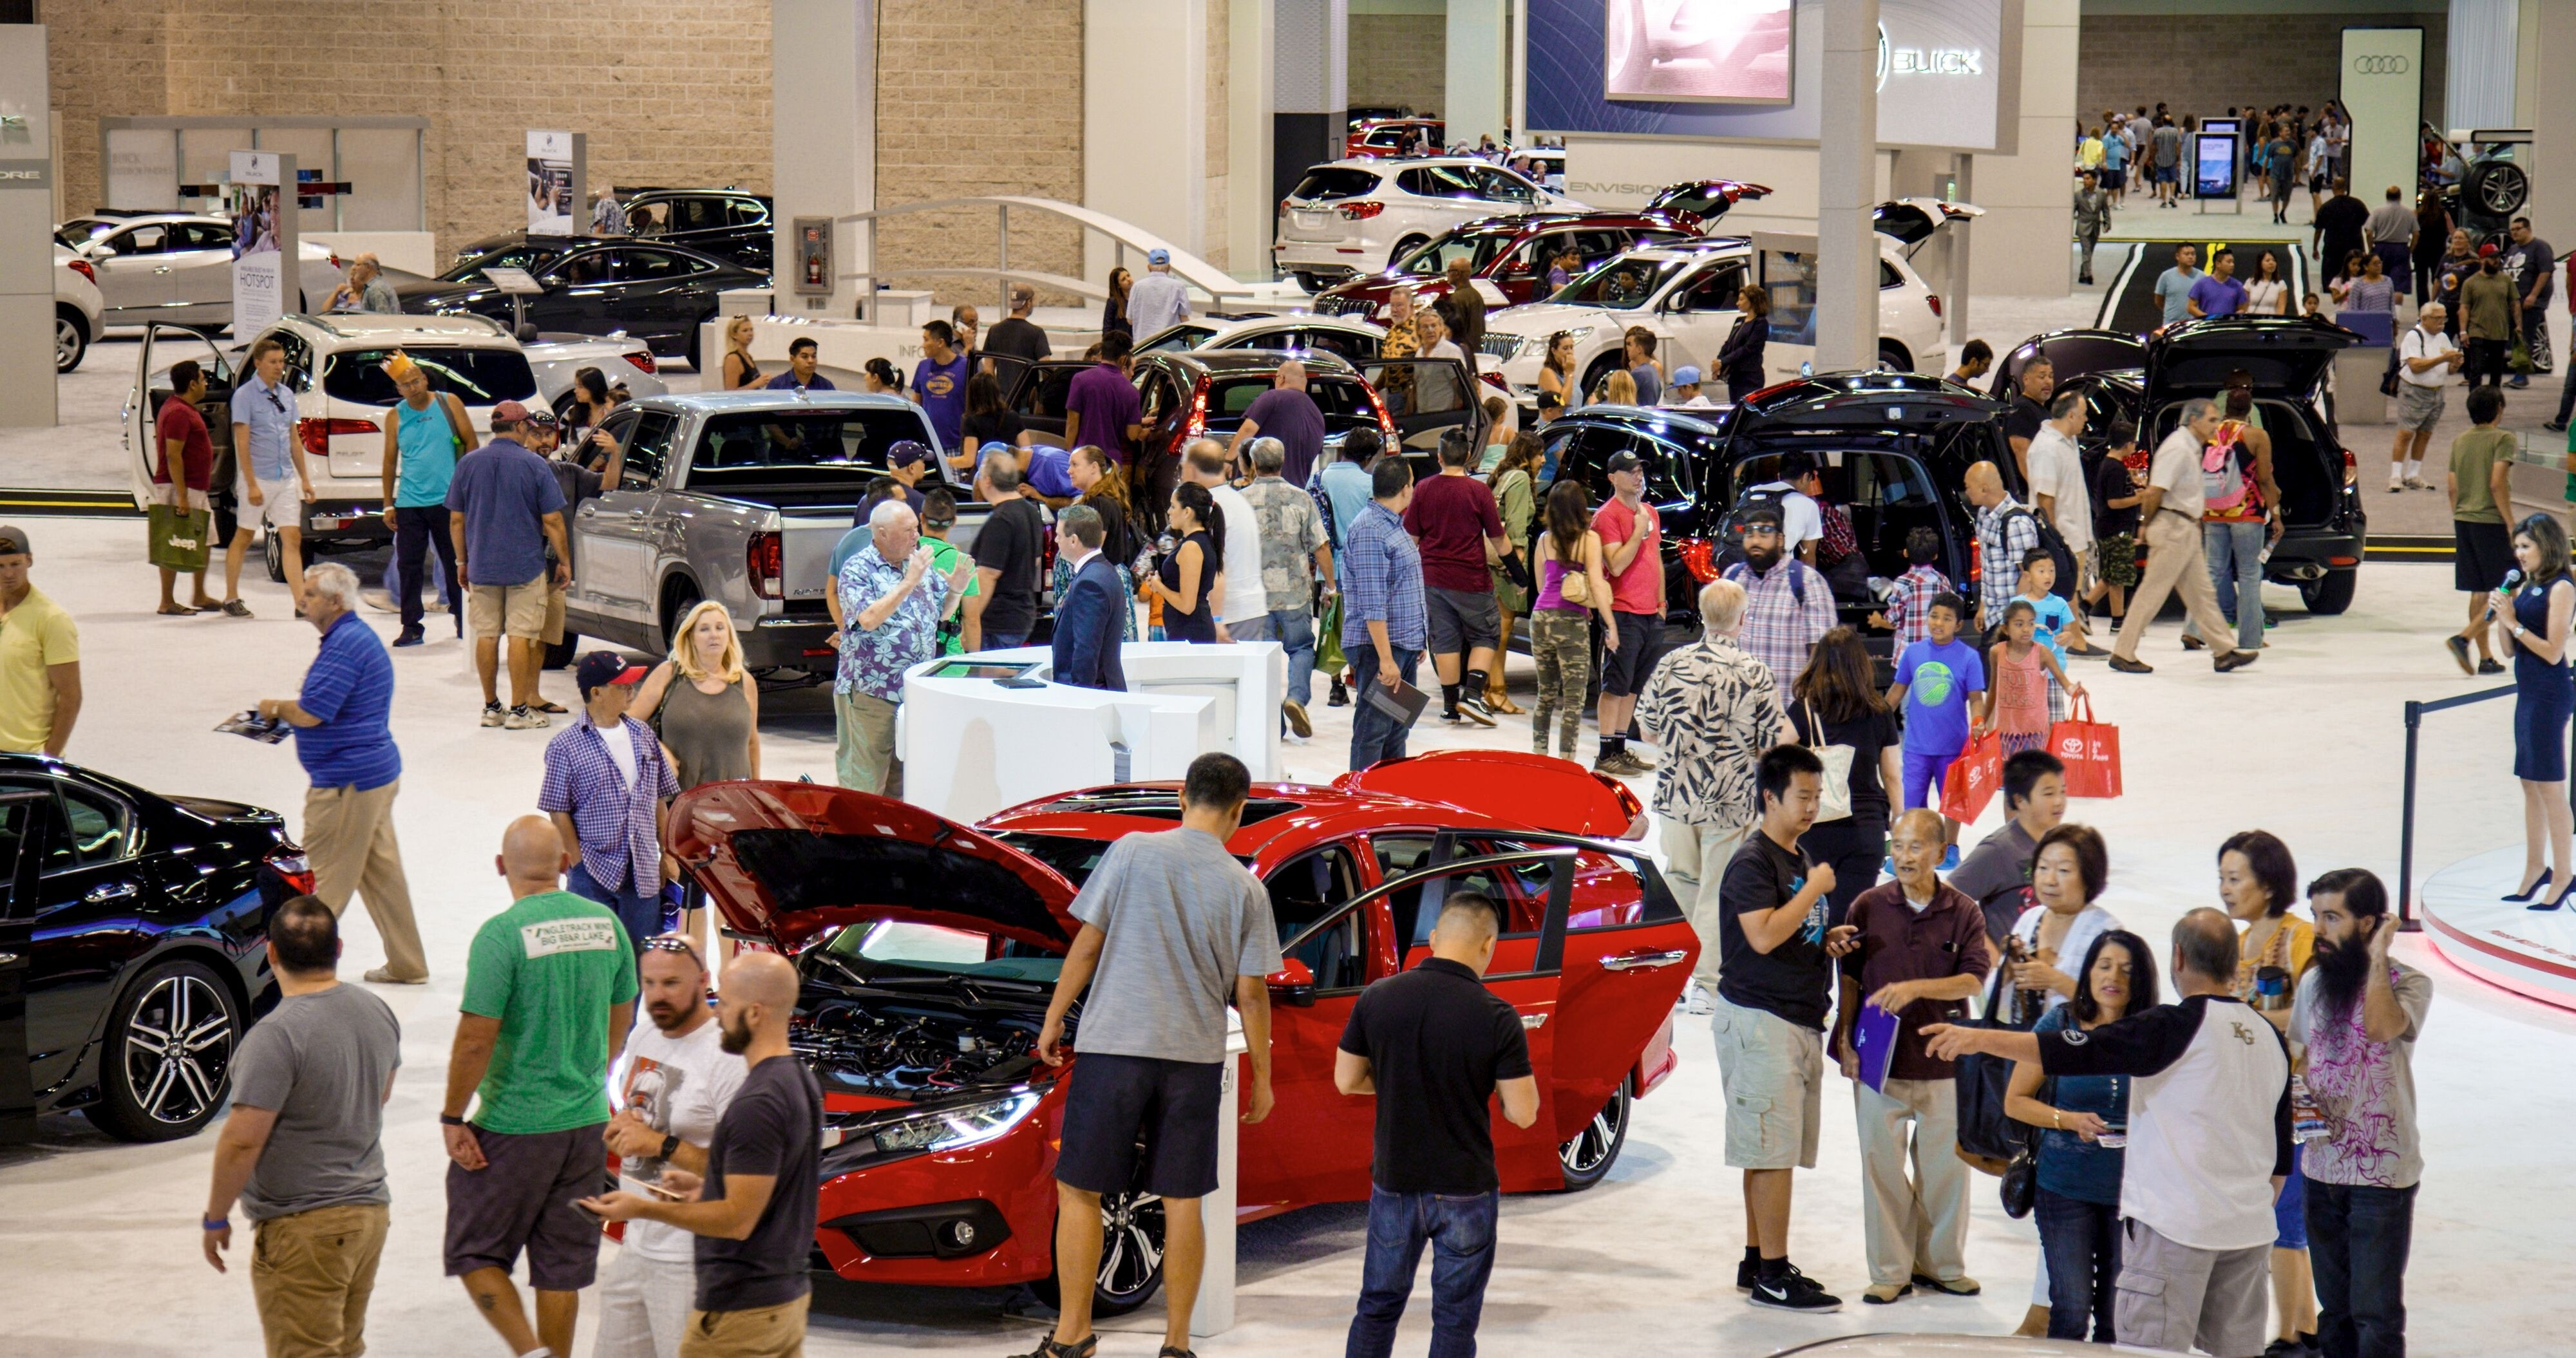 Heres How To Get Into The OC Auto Show For Free Fletcher - How much are the tickets for the car show